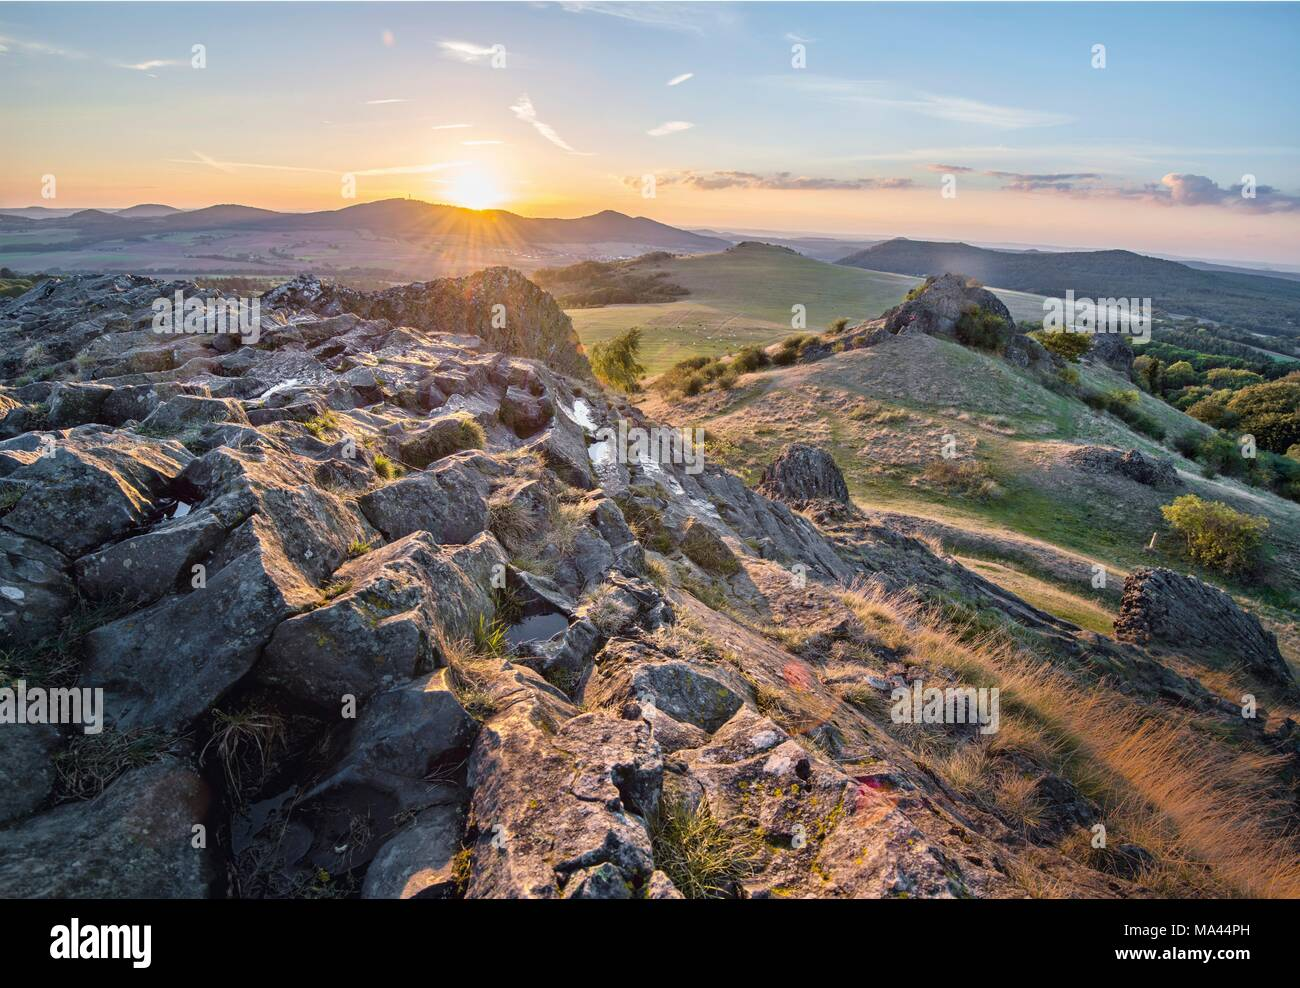 The panoramic 'Kassel-Steig' hiking trail on the Hoher Dörnberg hill, Kassel, Germany - Stock Image